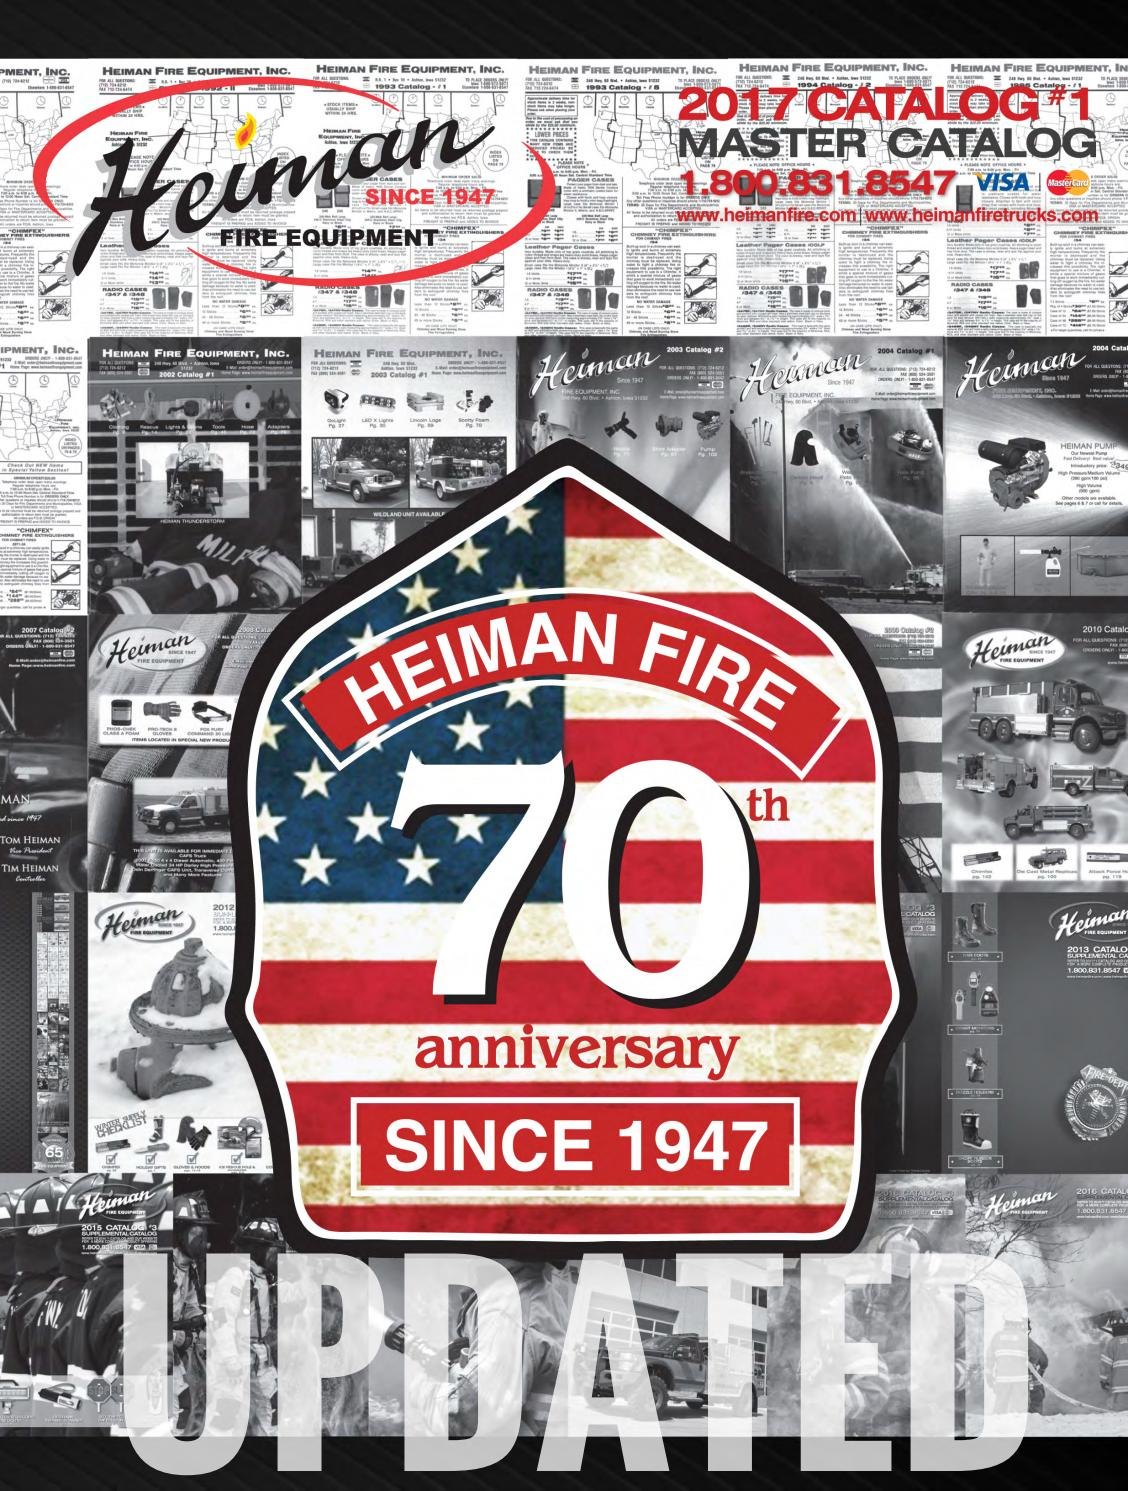 265a8f5ed43 Heiman Fire Catalog 2017  1 by Heiman Fire Equipment - issuu